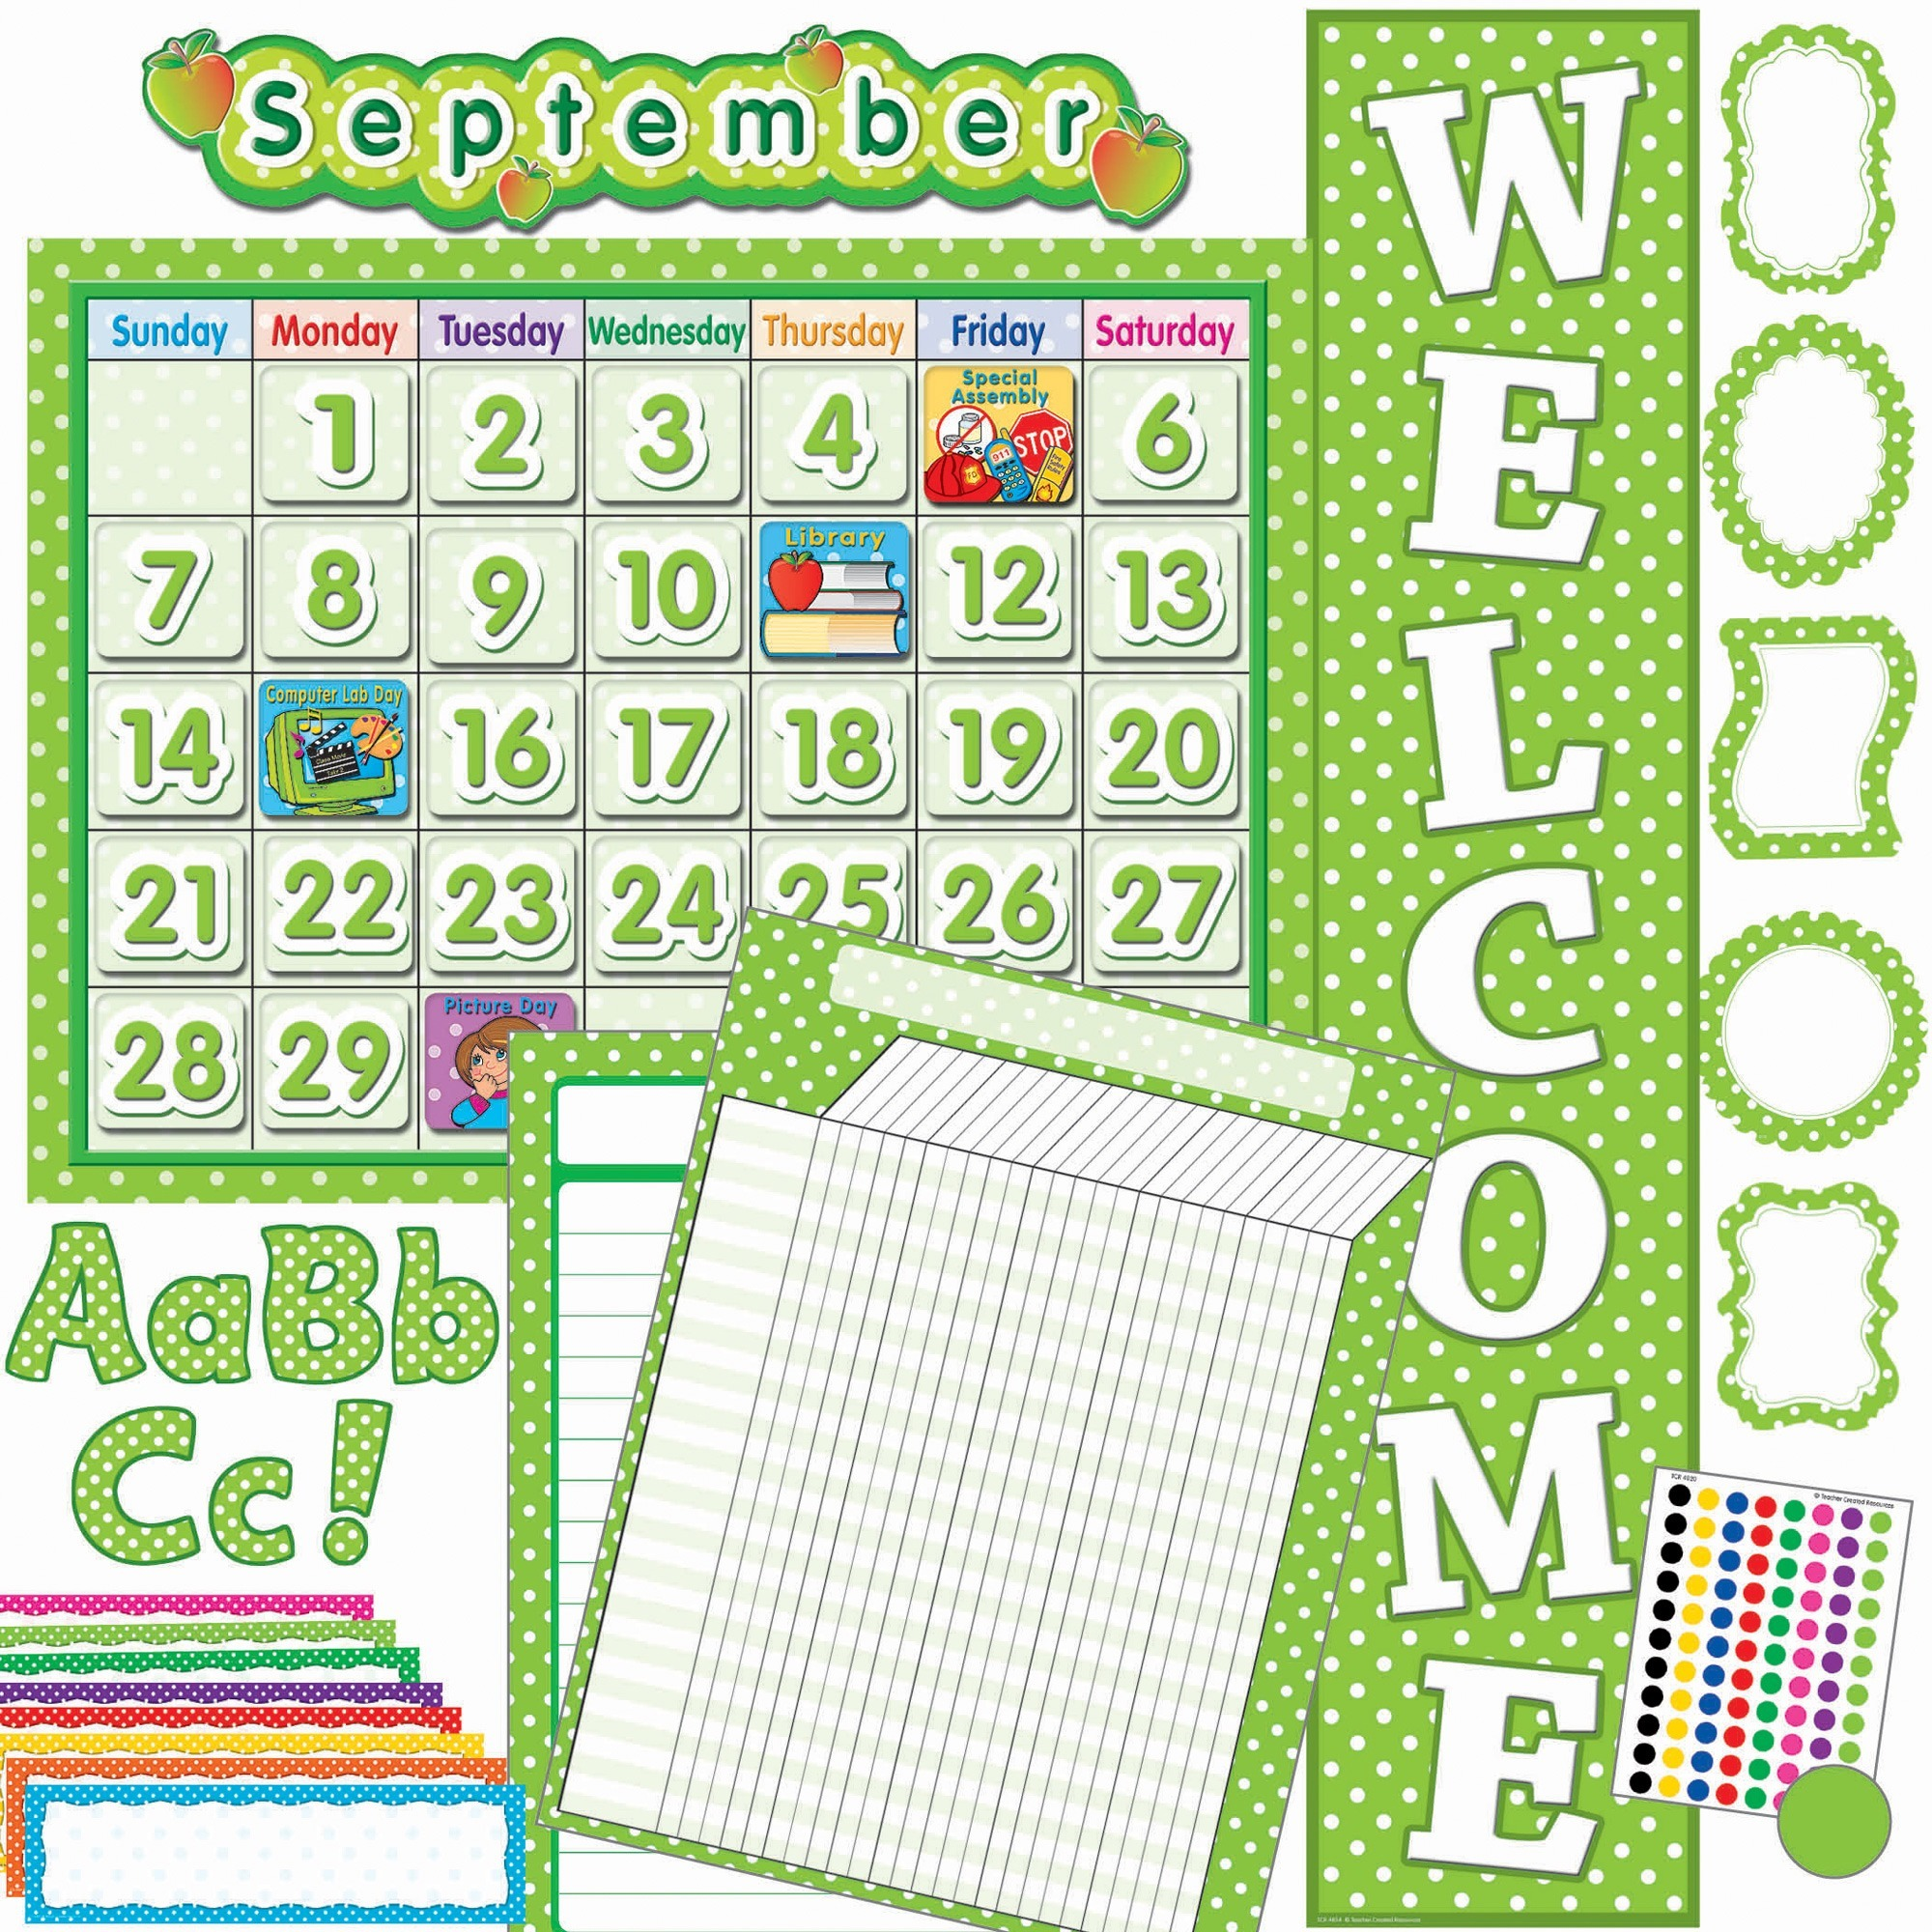 Teacher Created Resources, TCR9586, Lime/Dots Accents Board Set, 1 Set, Lime